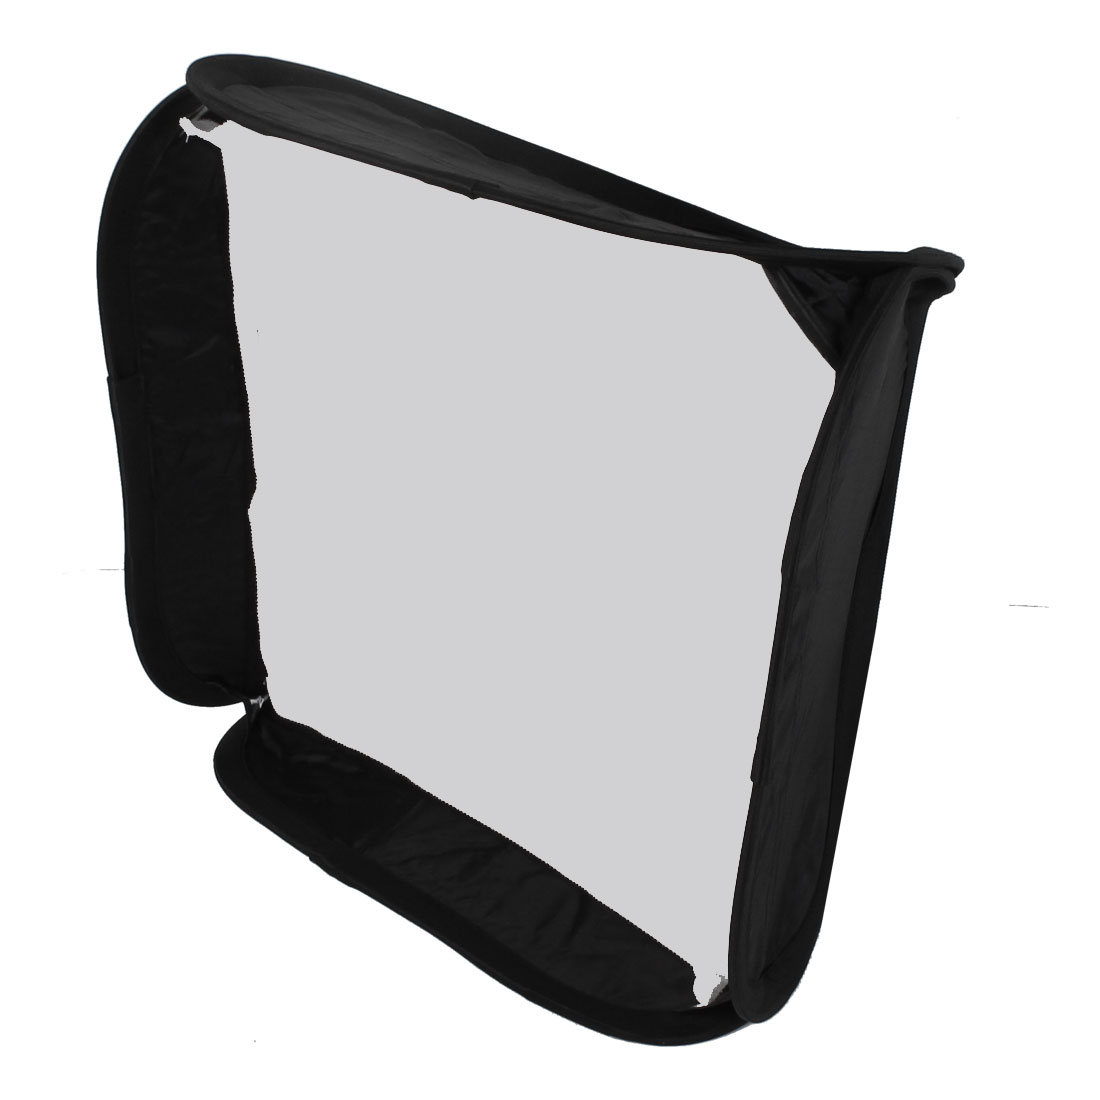 Portable 50x50cm Softbox for DSLR Camera Photo Flash Light